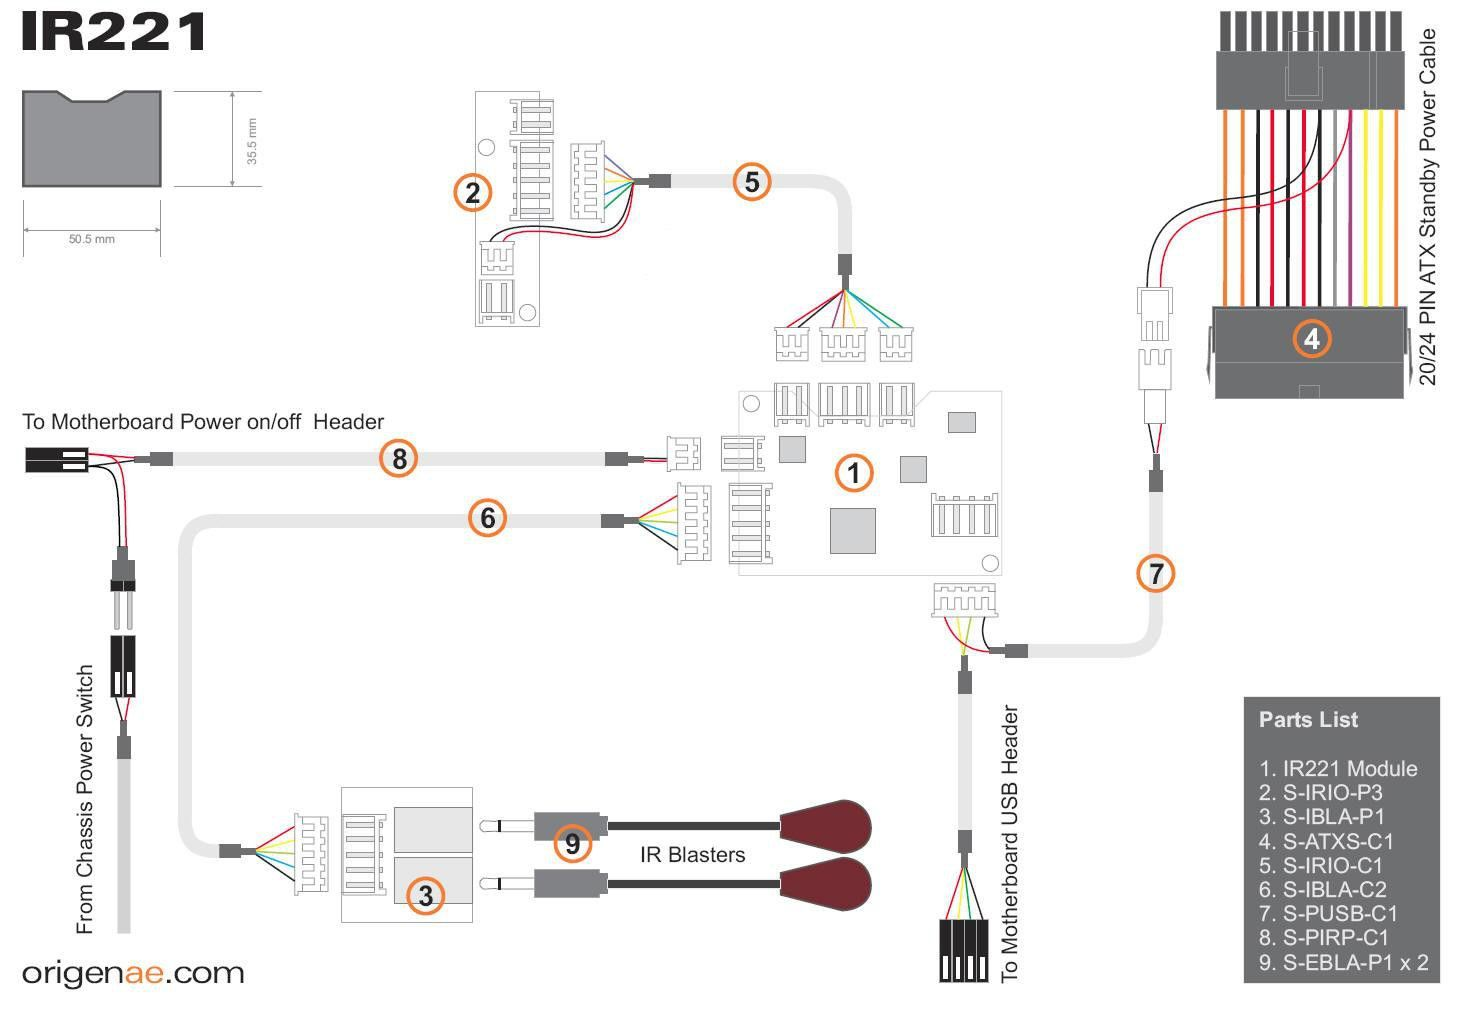 Usb Cable Wiring Diagram Luxury Sata To Pinout Of 1 Usb Cable Usb House Wiring